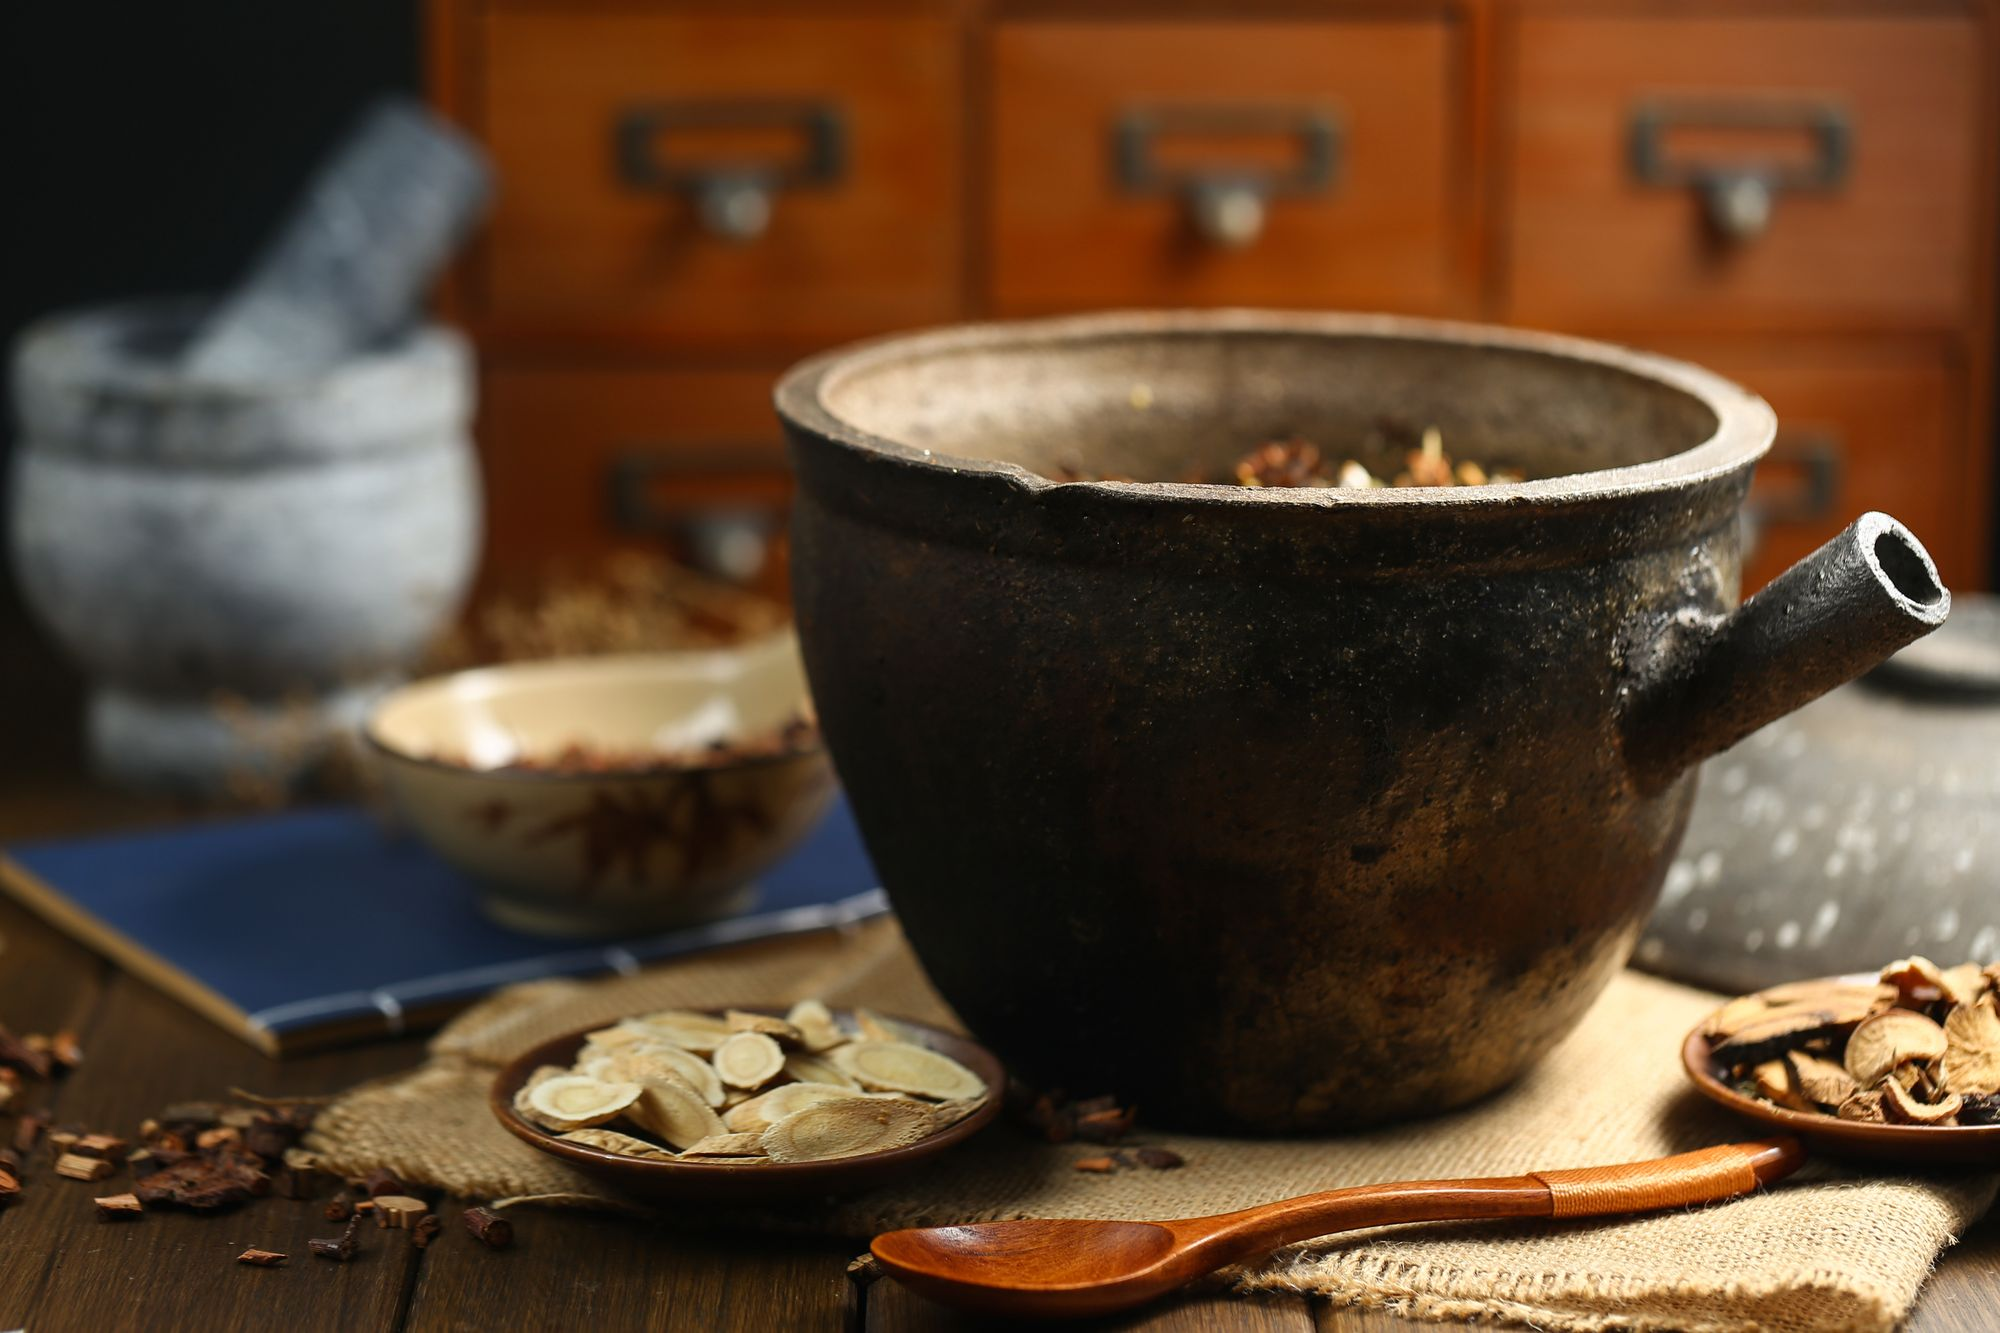 image: Chinese medicine ceramic pot and wooden spoon